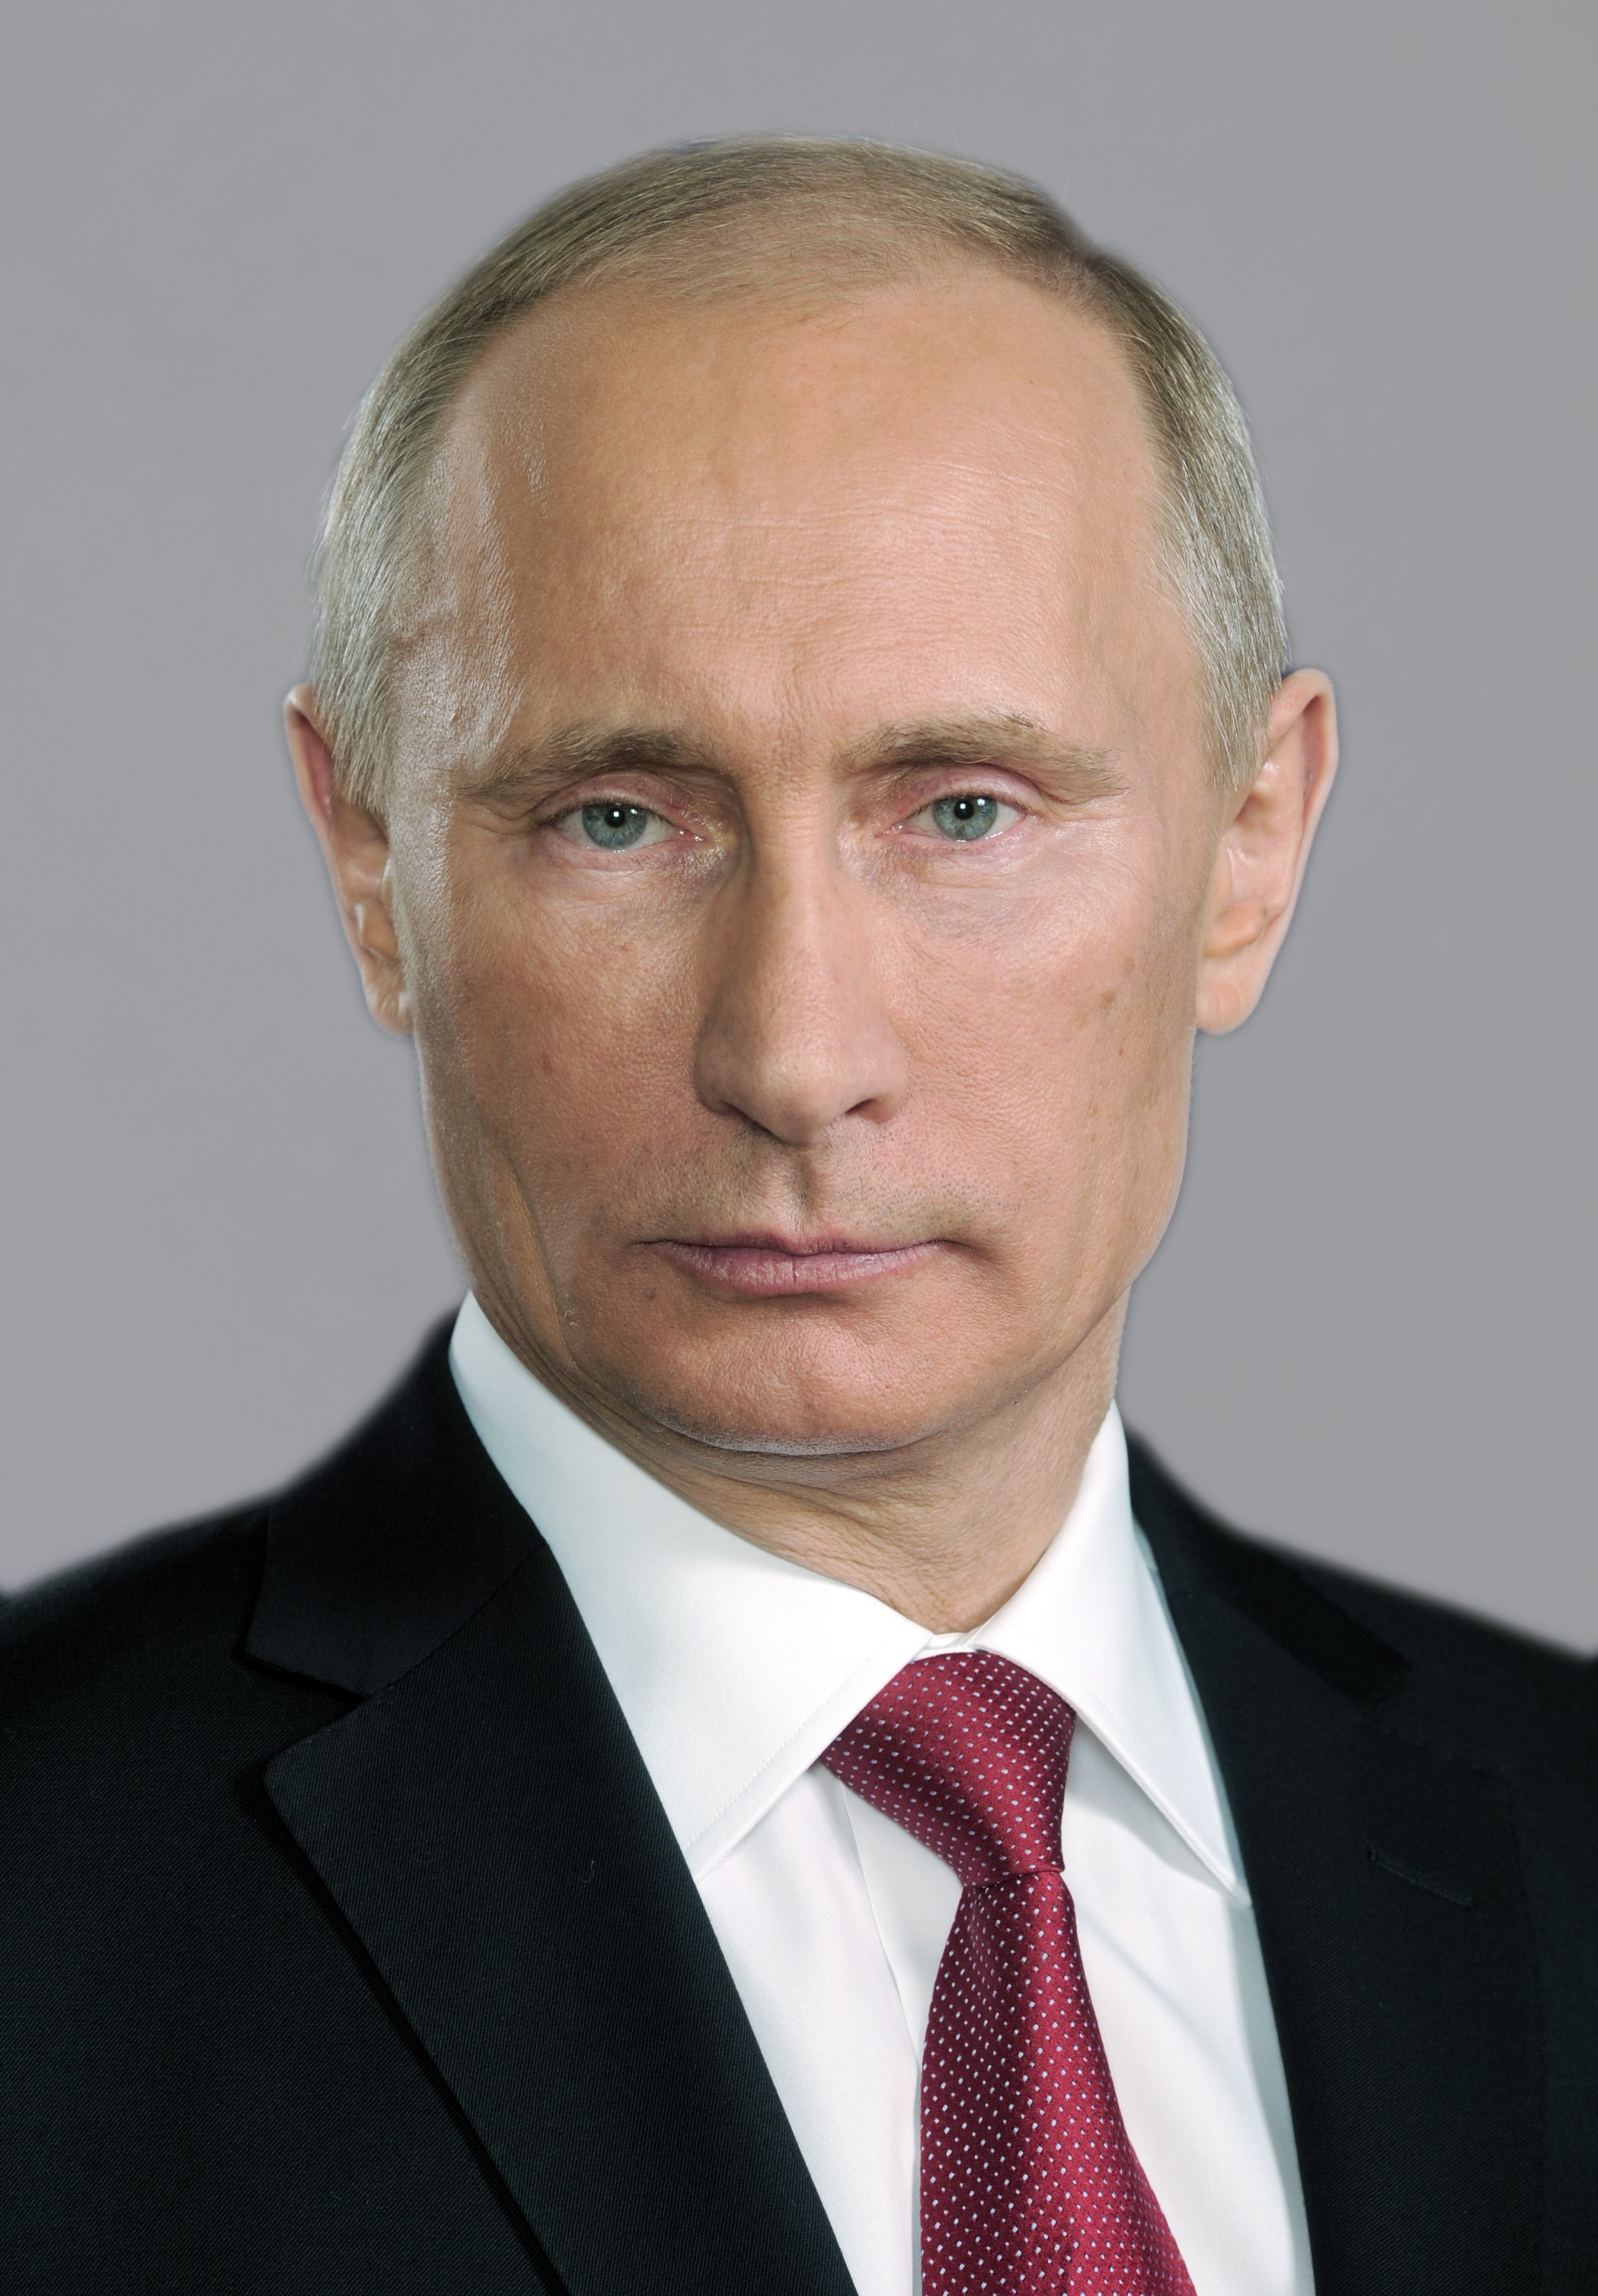 Creep of the Week: Vladimir Putin